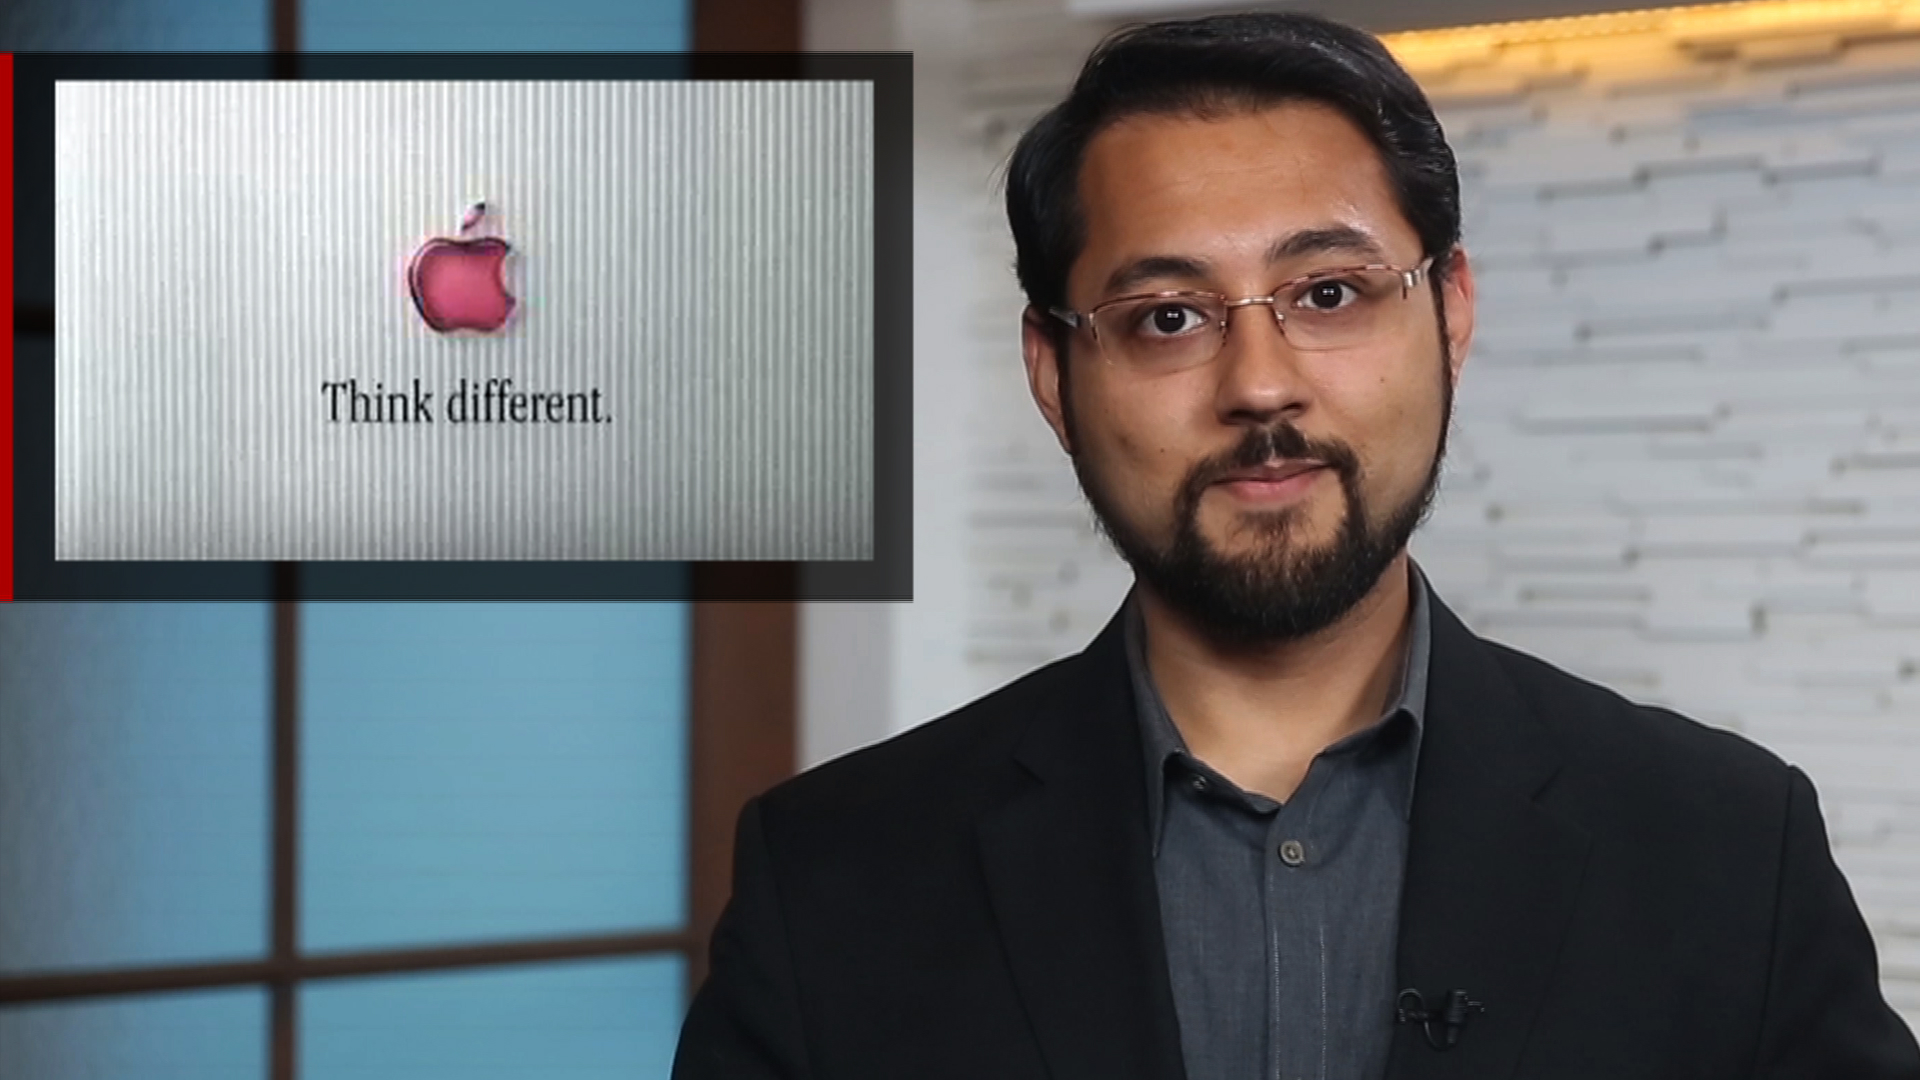 Video: Top 5 times Apple shook up the tech world